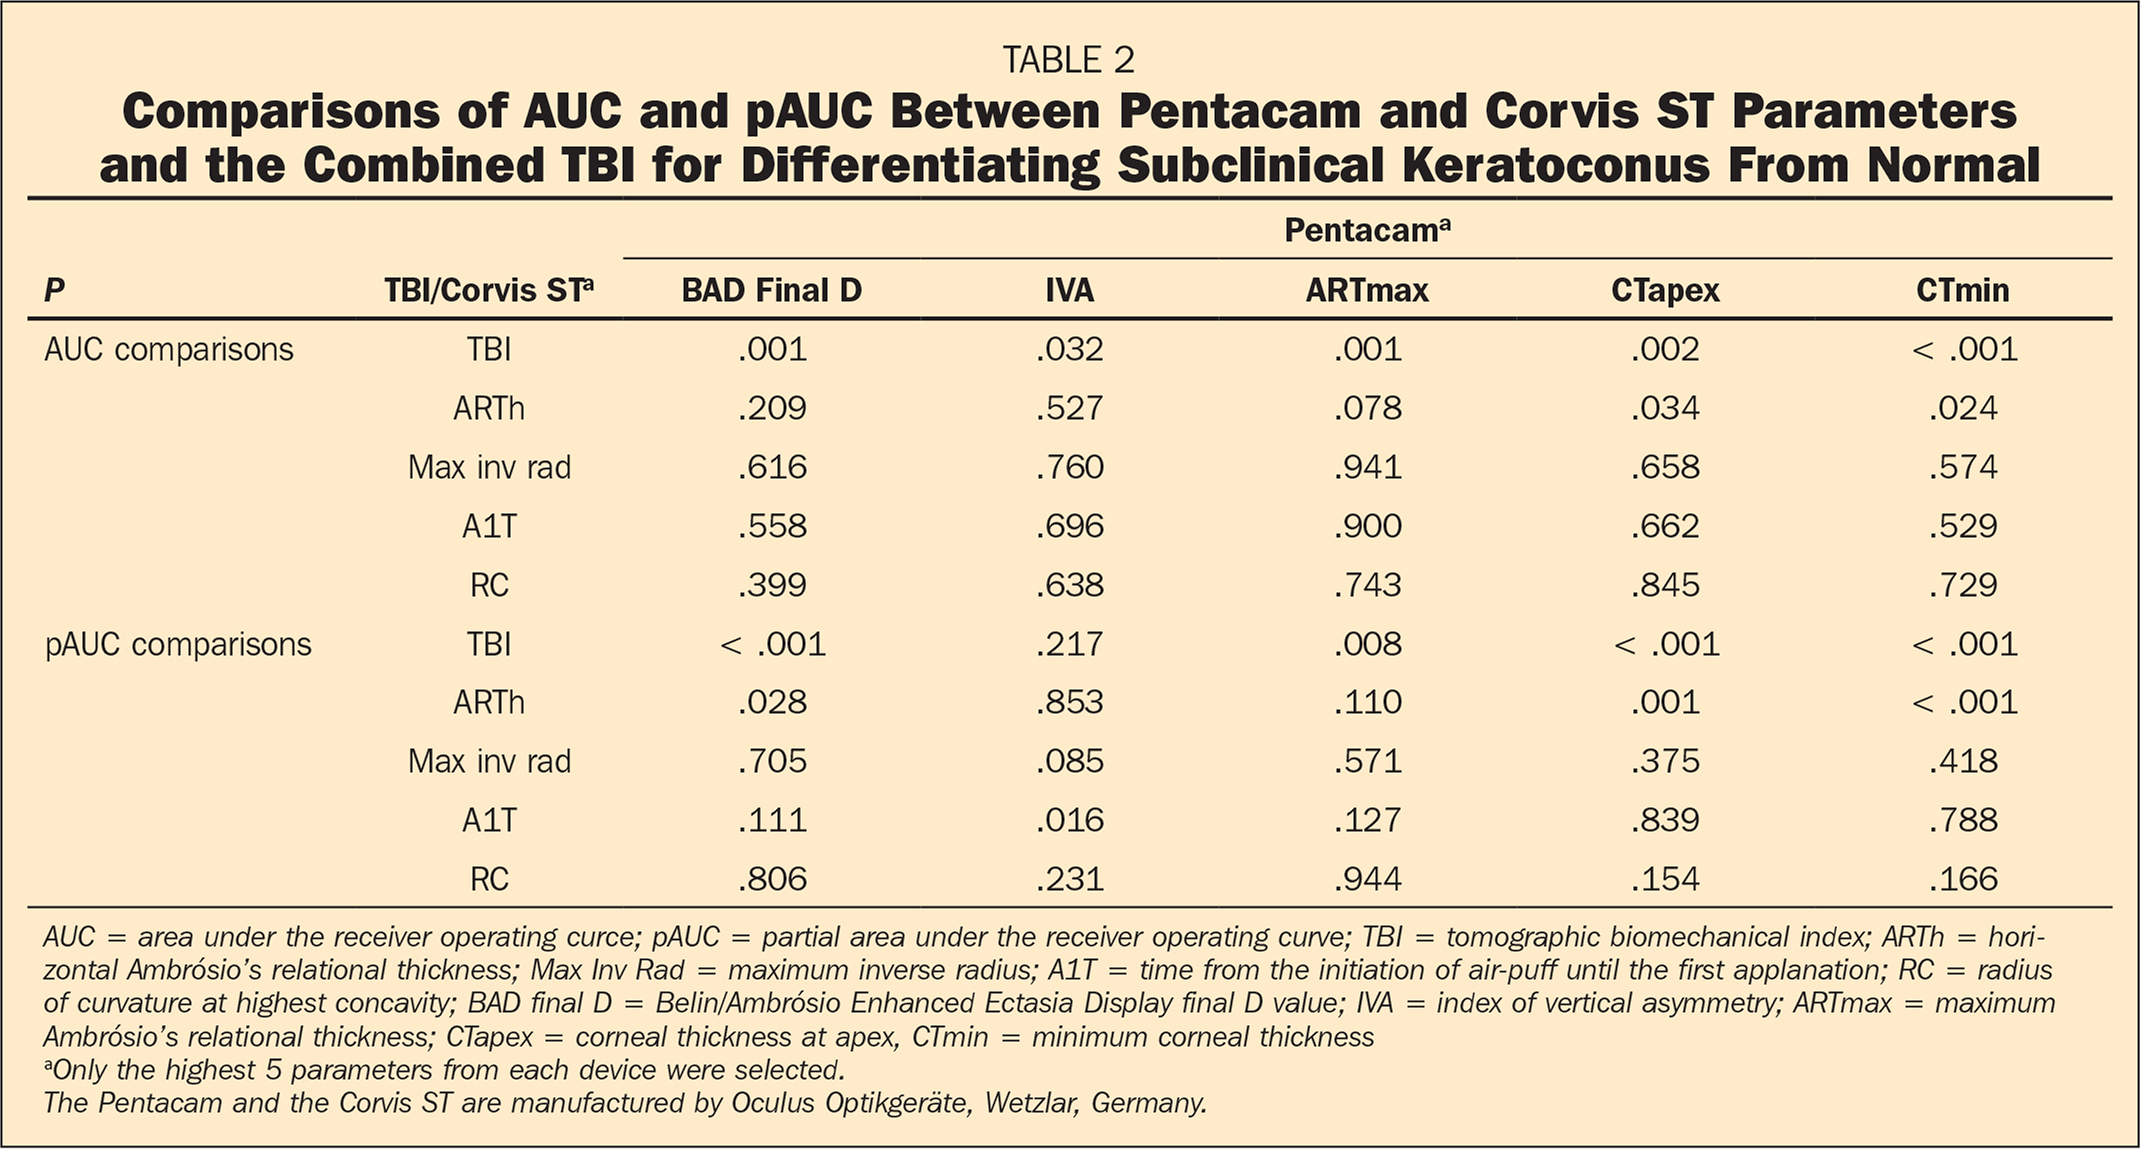 Comparisons of AUC and pAUC Between Pentacam and Corvis ST Parameters and the Combined TBI for Differentiating Subclinical Keratoconus From Normal